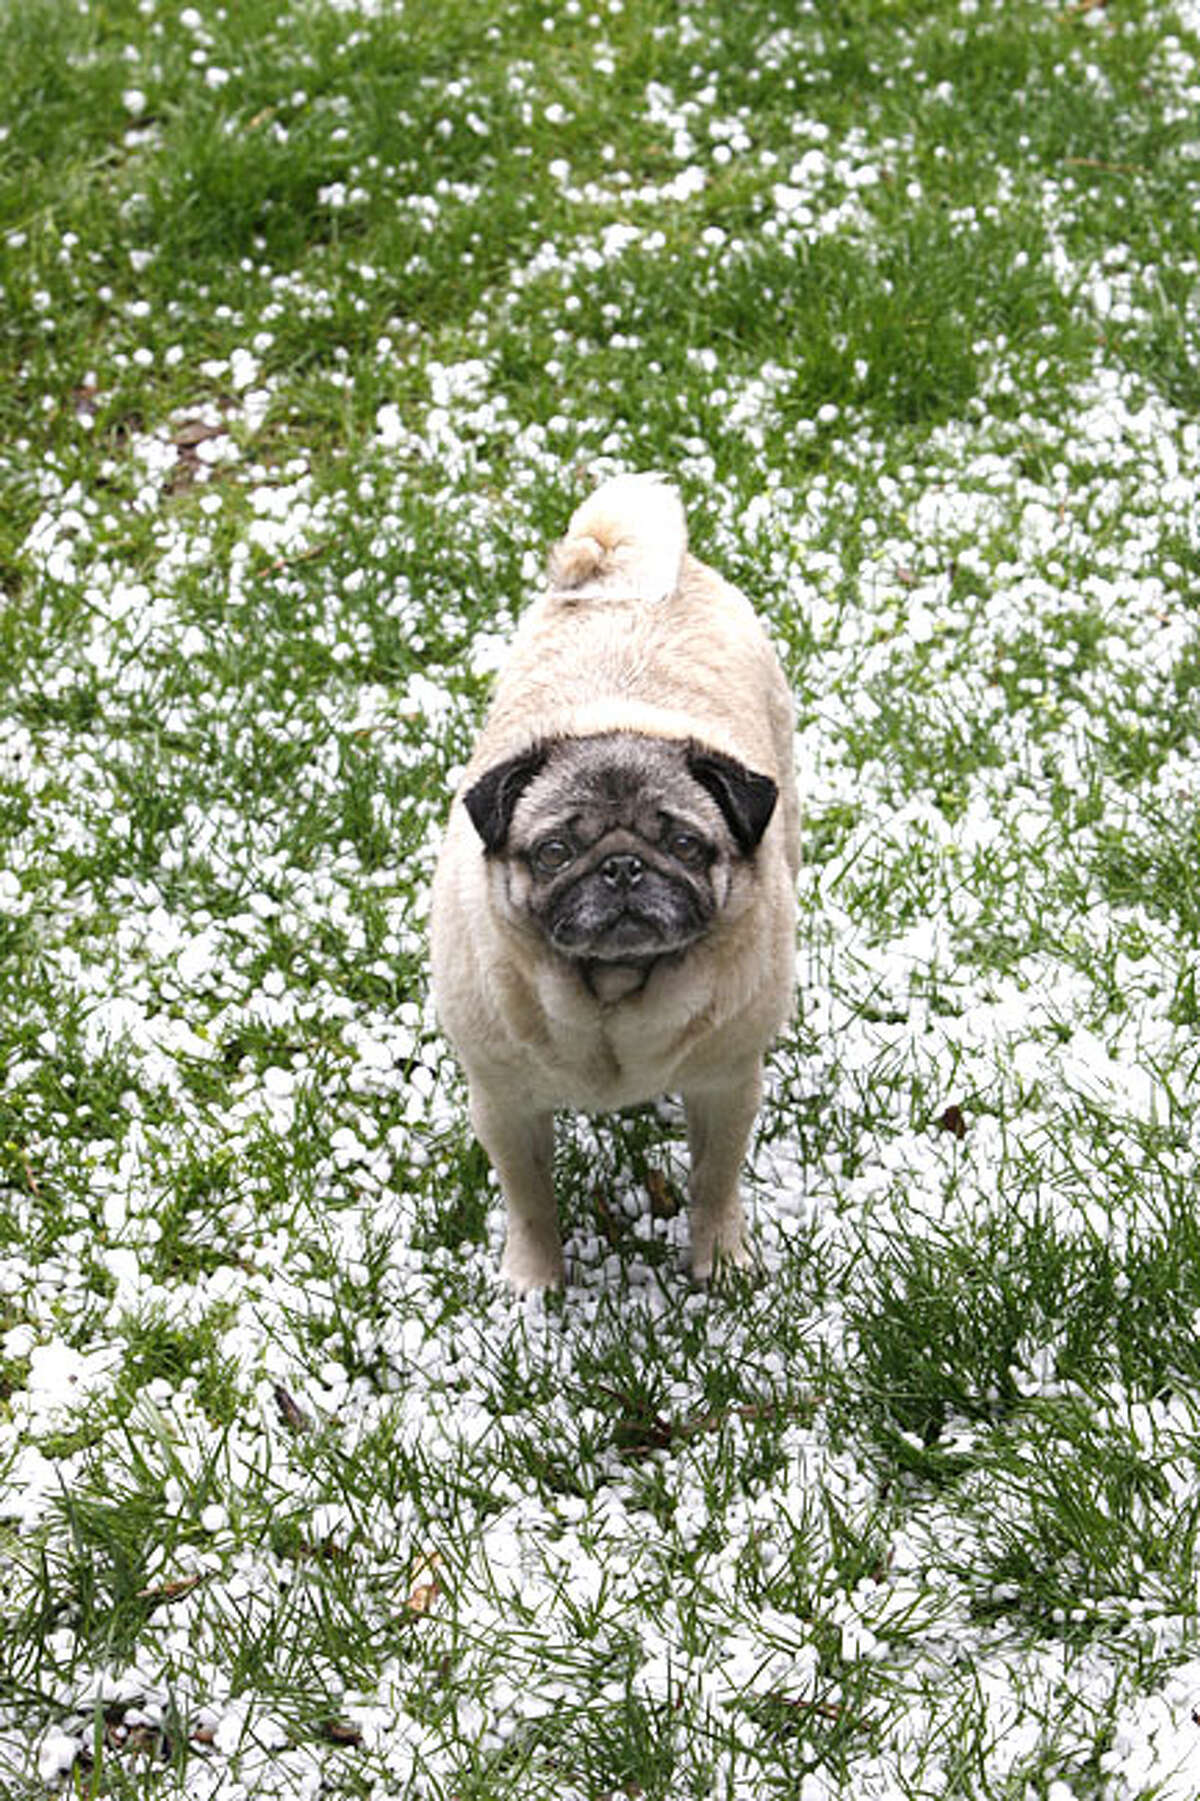 A pug looks up after a brief hail storm in Clarence, a suburb of Buffalo, N.Y., Wednesday, April 7, 2010.